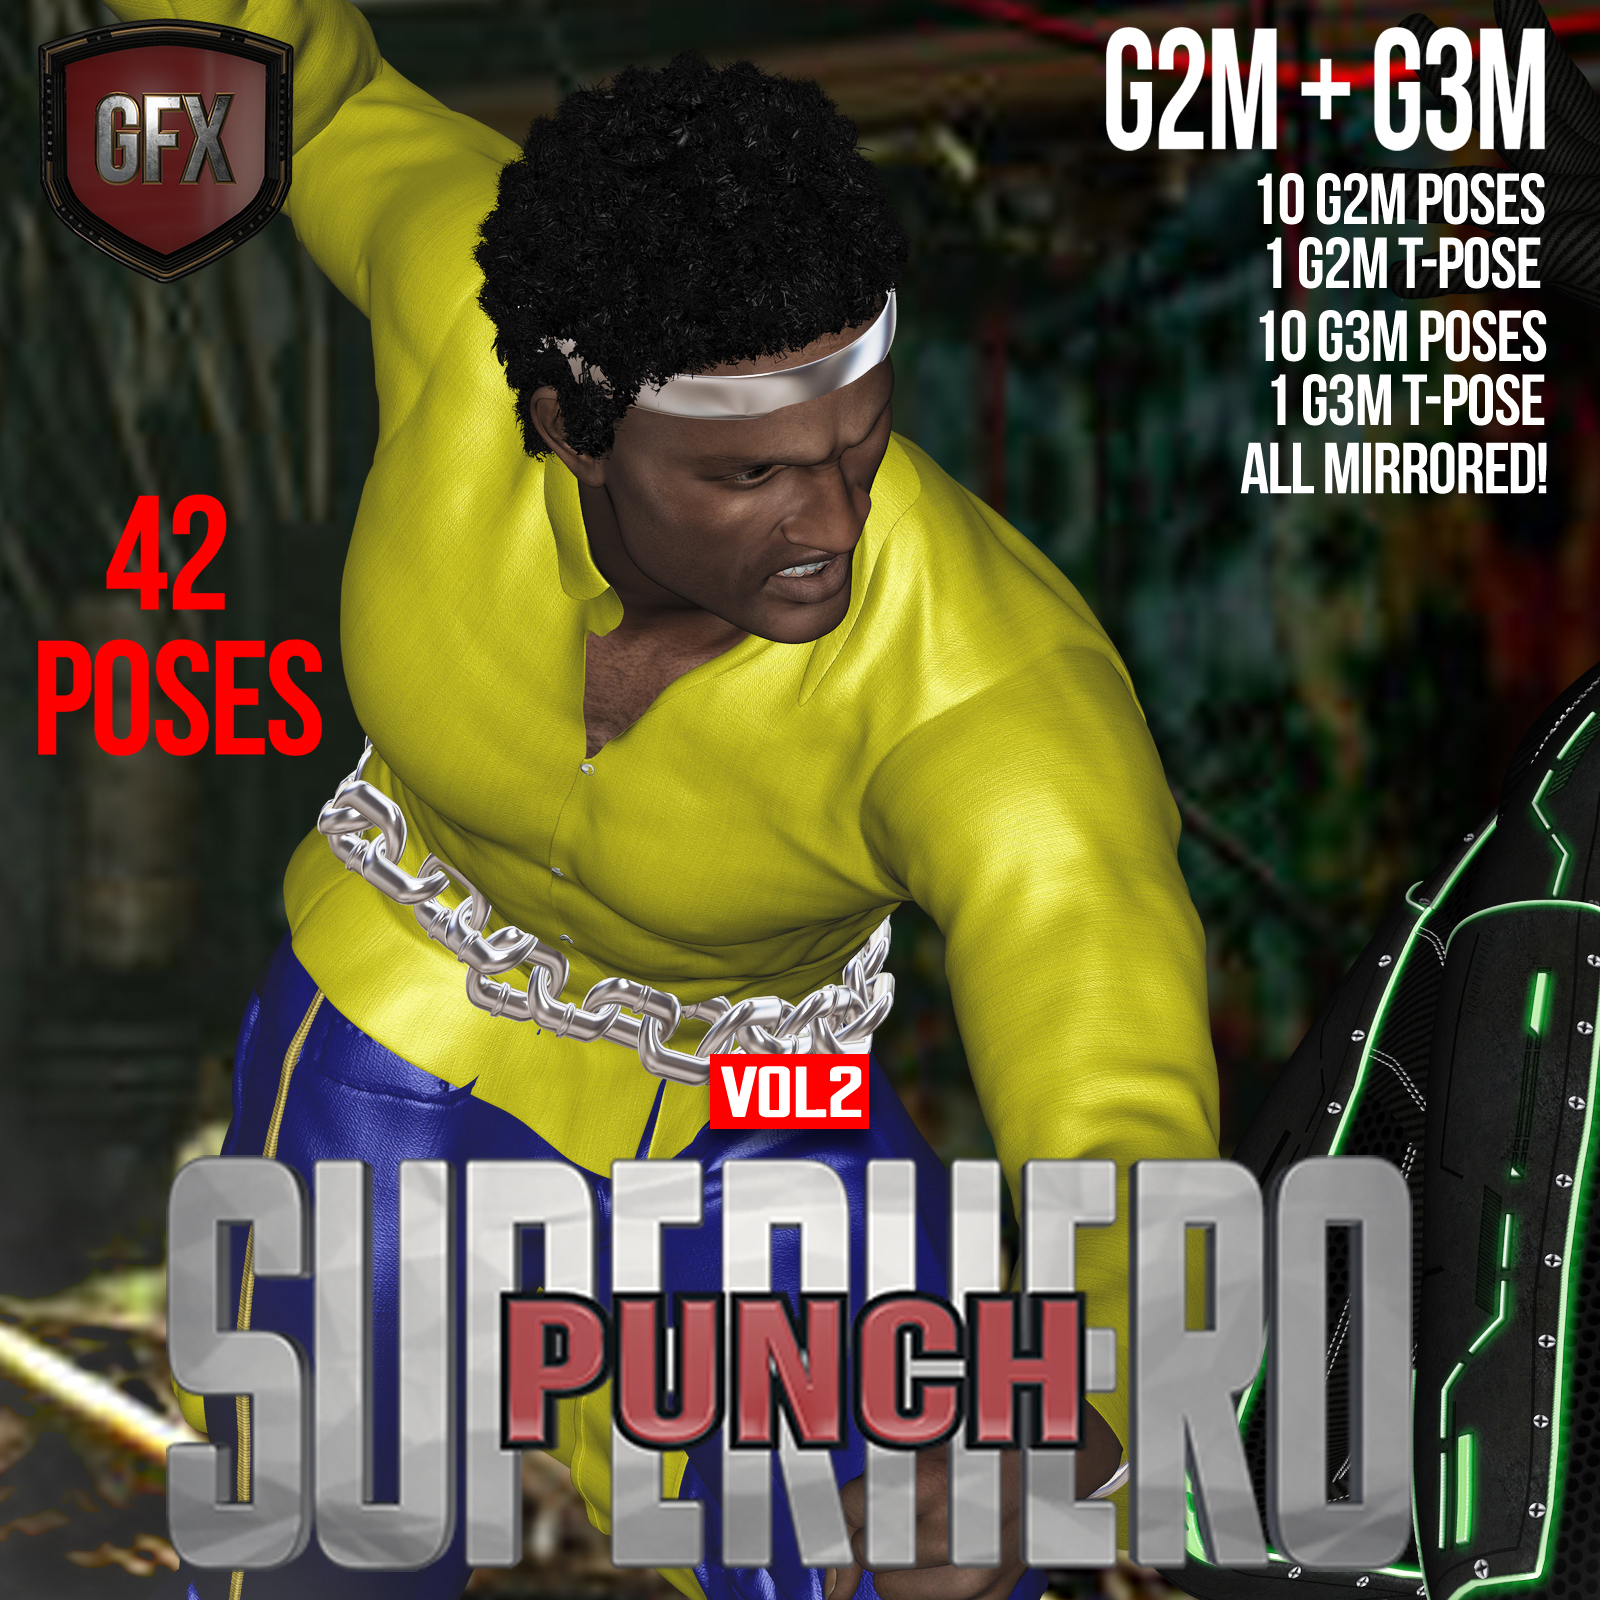 SuperHero Punch for G2M & G3M Volume 2 by GriffinFX